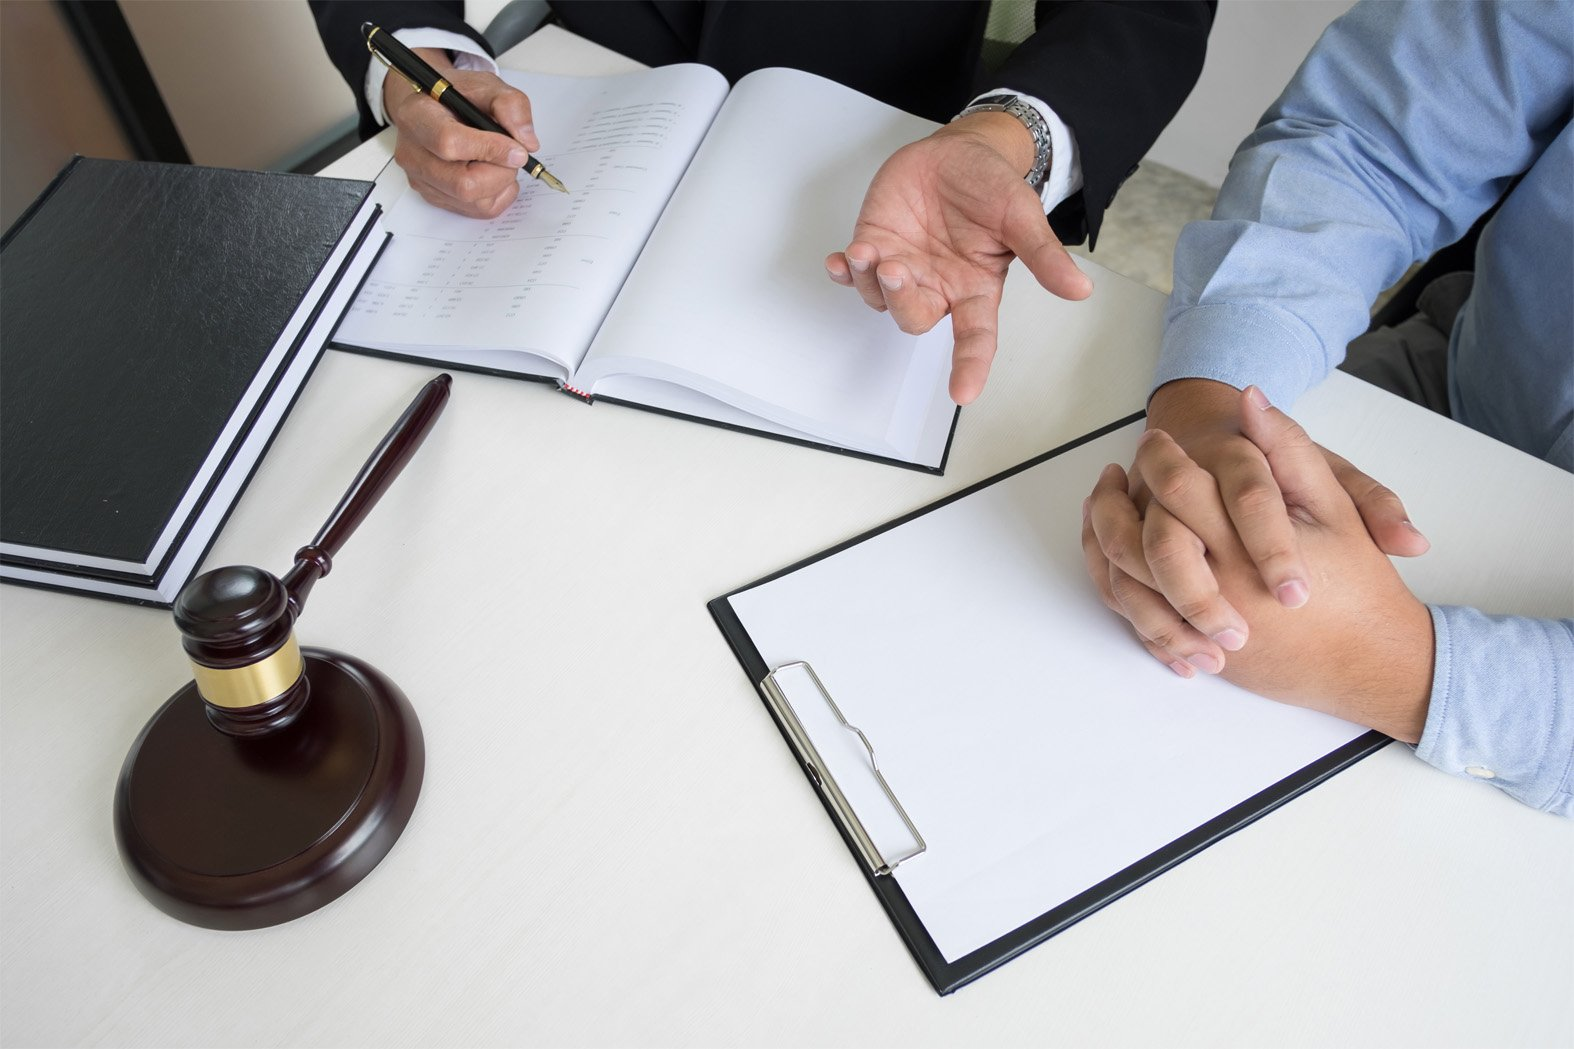 Injuries Attorneys Now Handle Wrongful Dying Cases